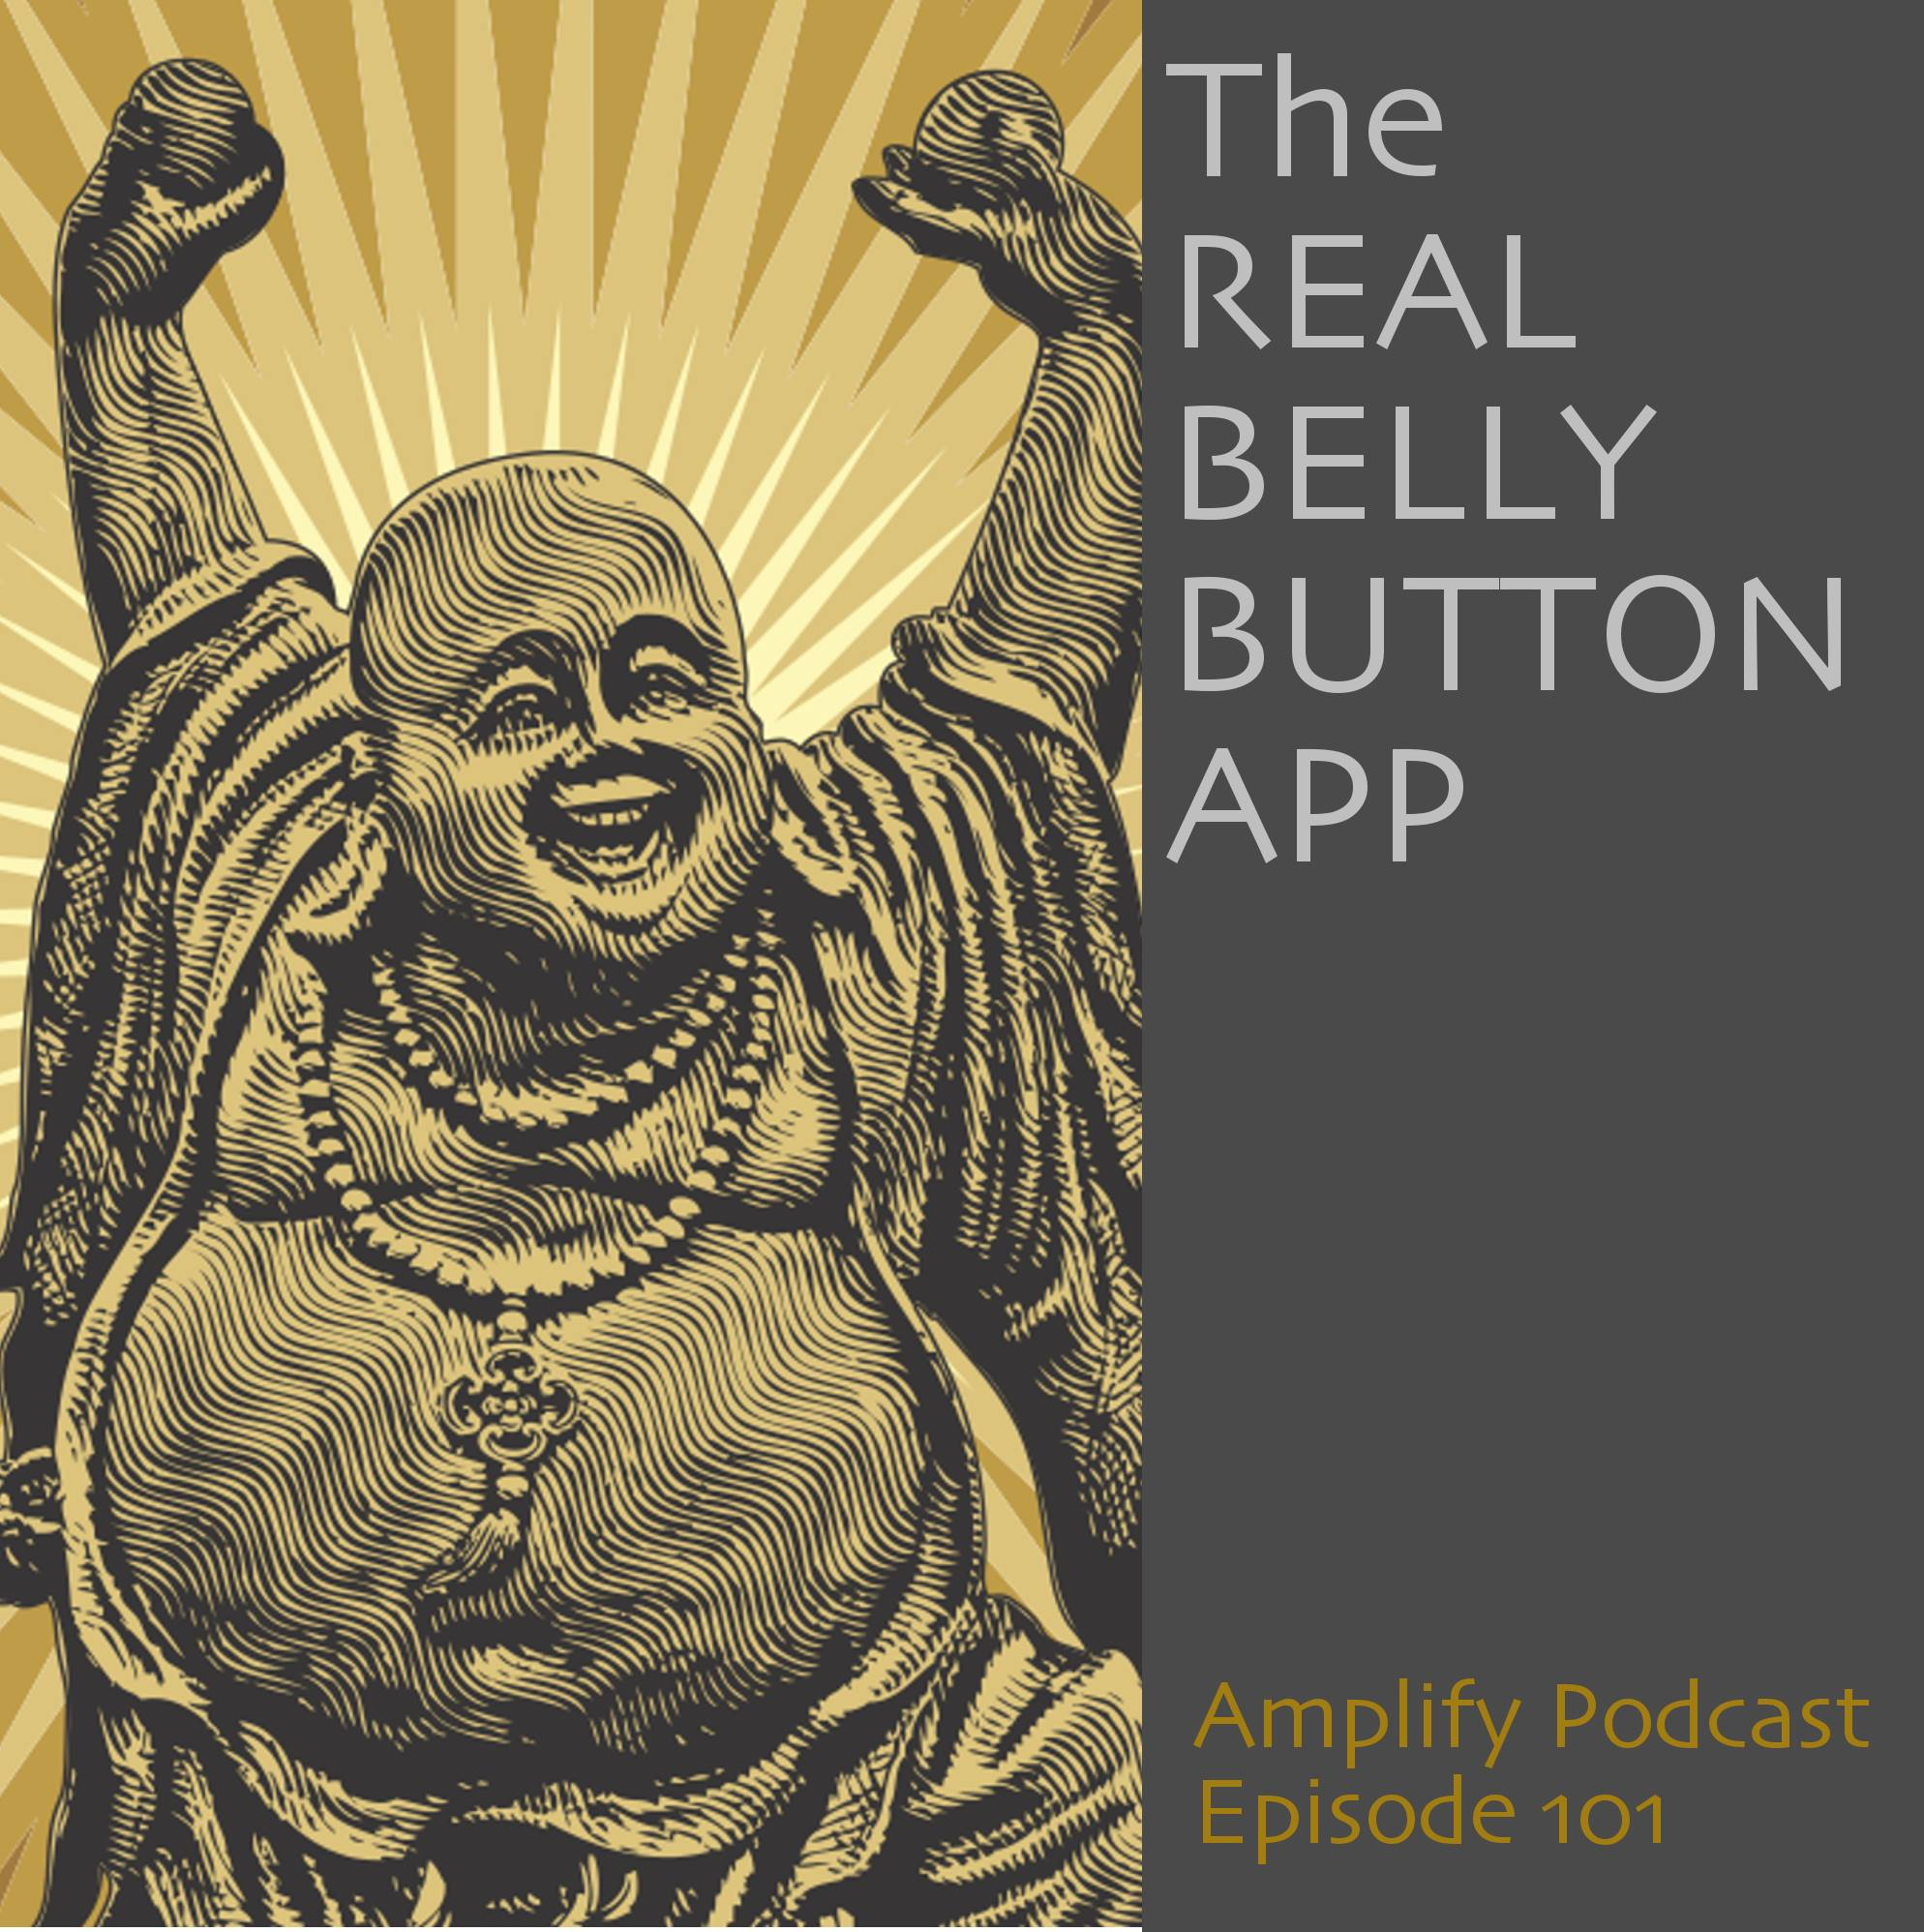 The Real Belly Button App